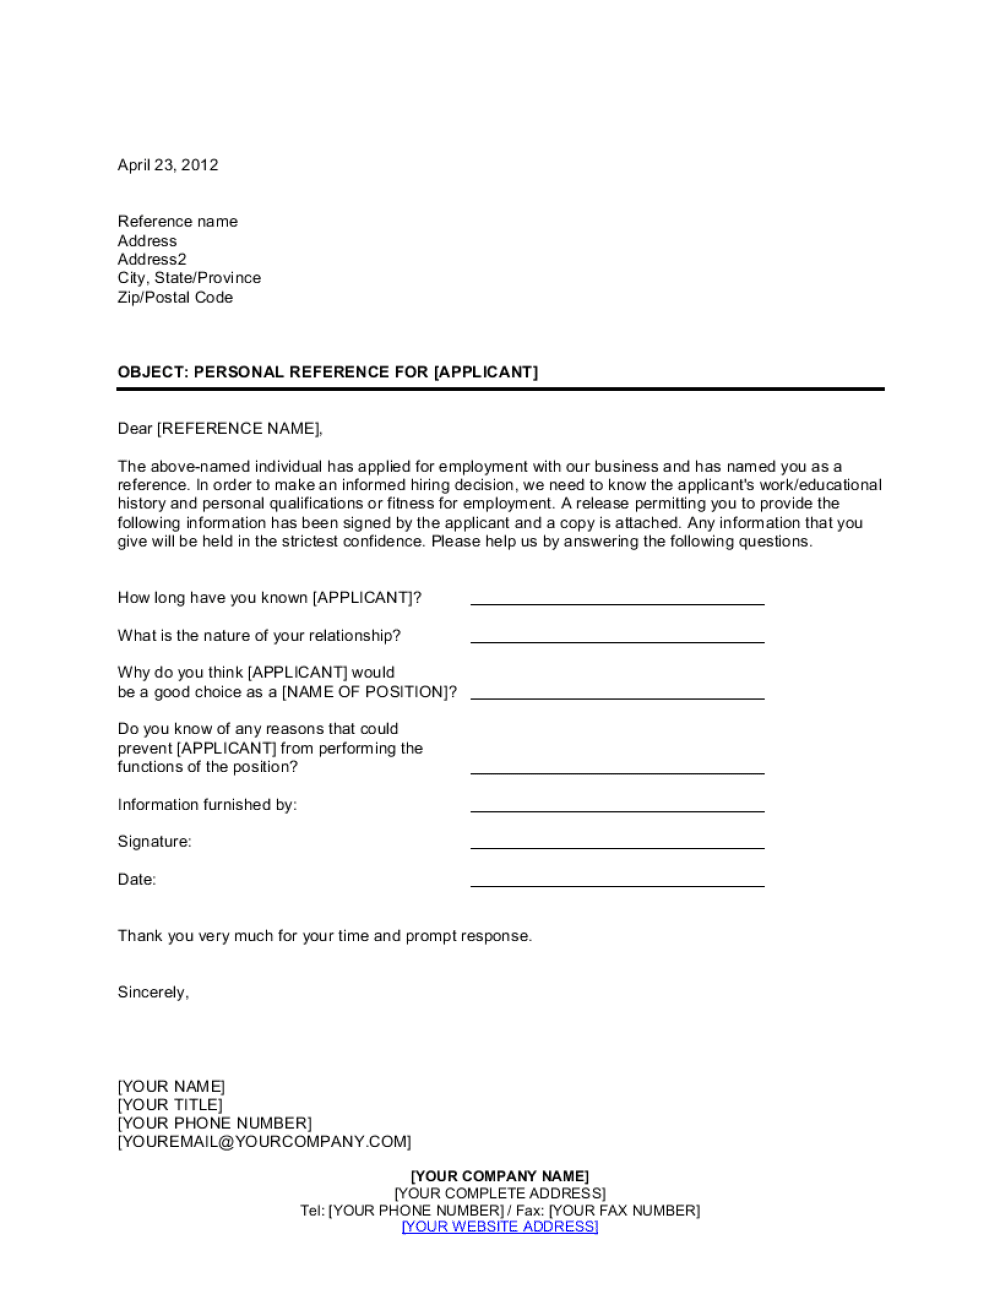 Personal Reference Check Letter Template